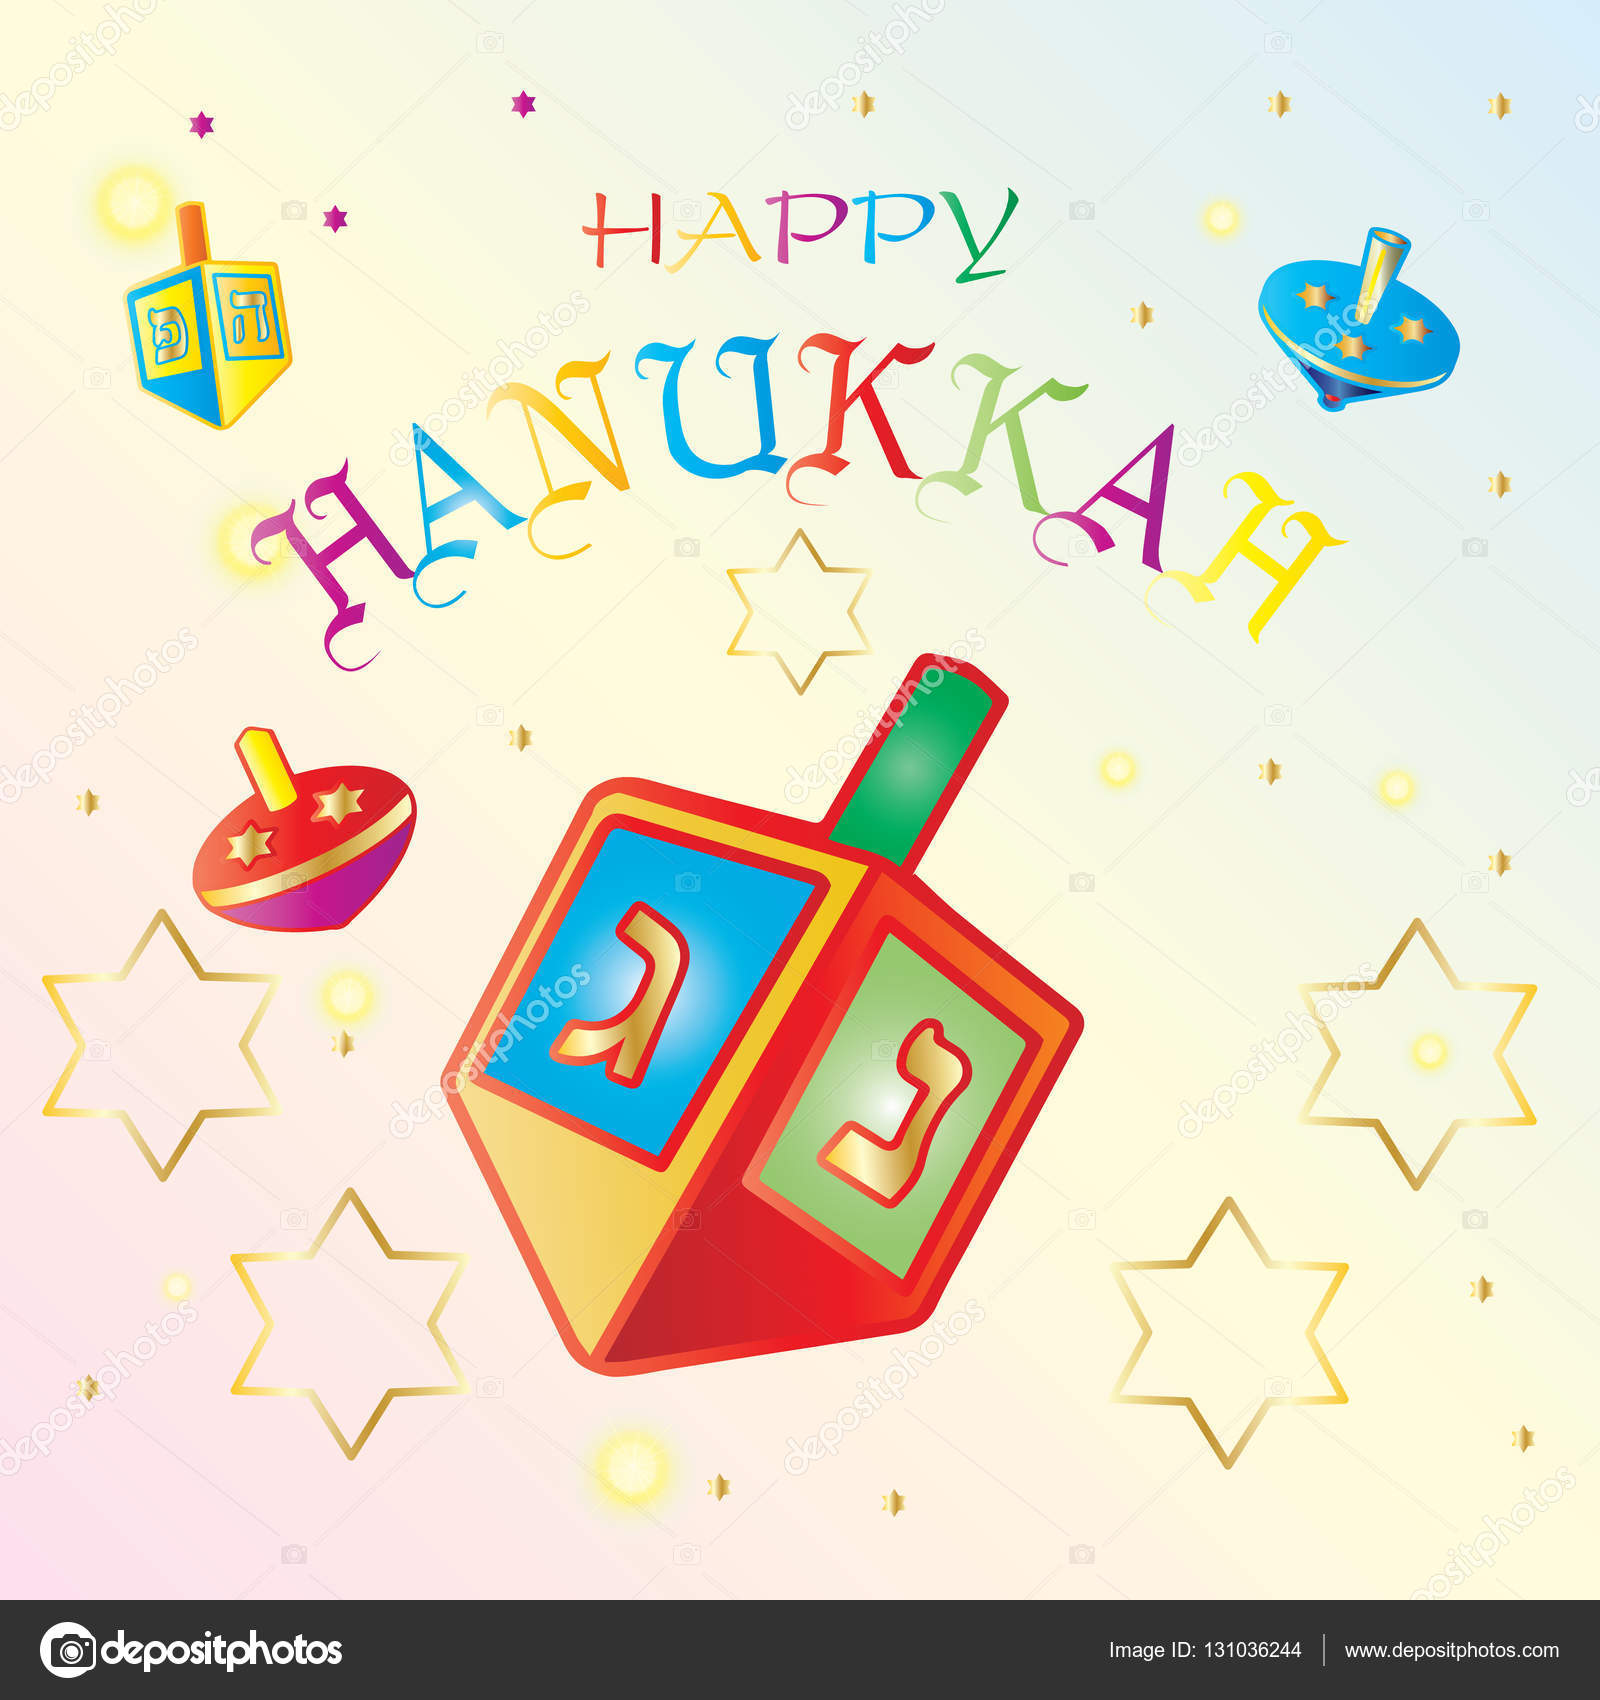 Uncategorized Hanukkah Festival Of Lights Song hanukkah festival of lights congratulations card greeting dreidel a small four sided spinning top with hebrew letter